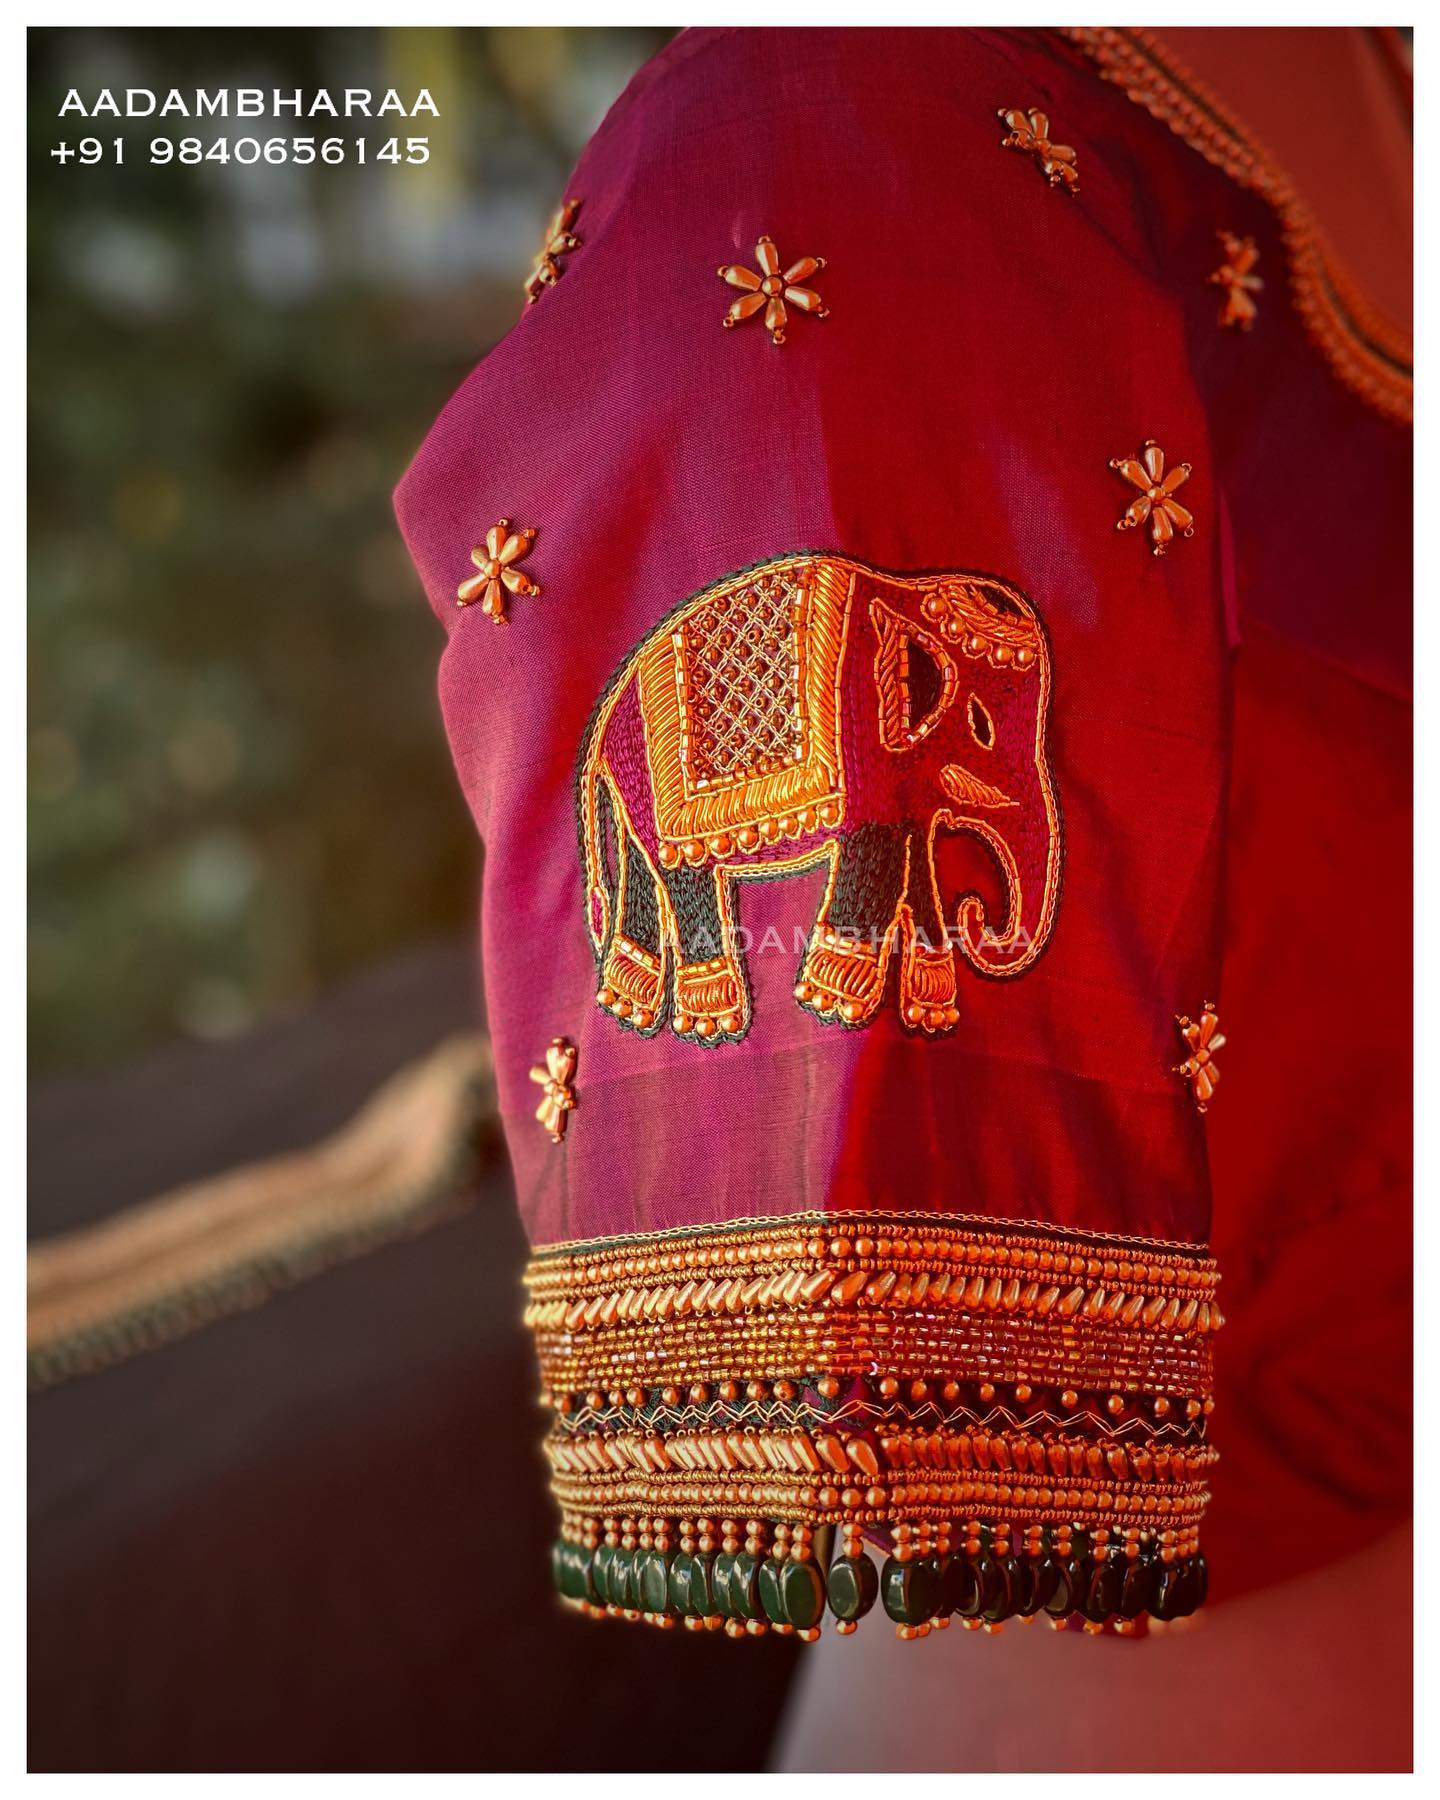 Elephant Embroidered Bridal Blouse. Gorgeous bridal blouse with elephant hand embroidery gold thread and bead maggam work.   2021-07-08